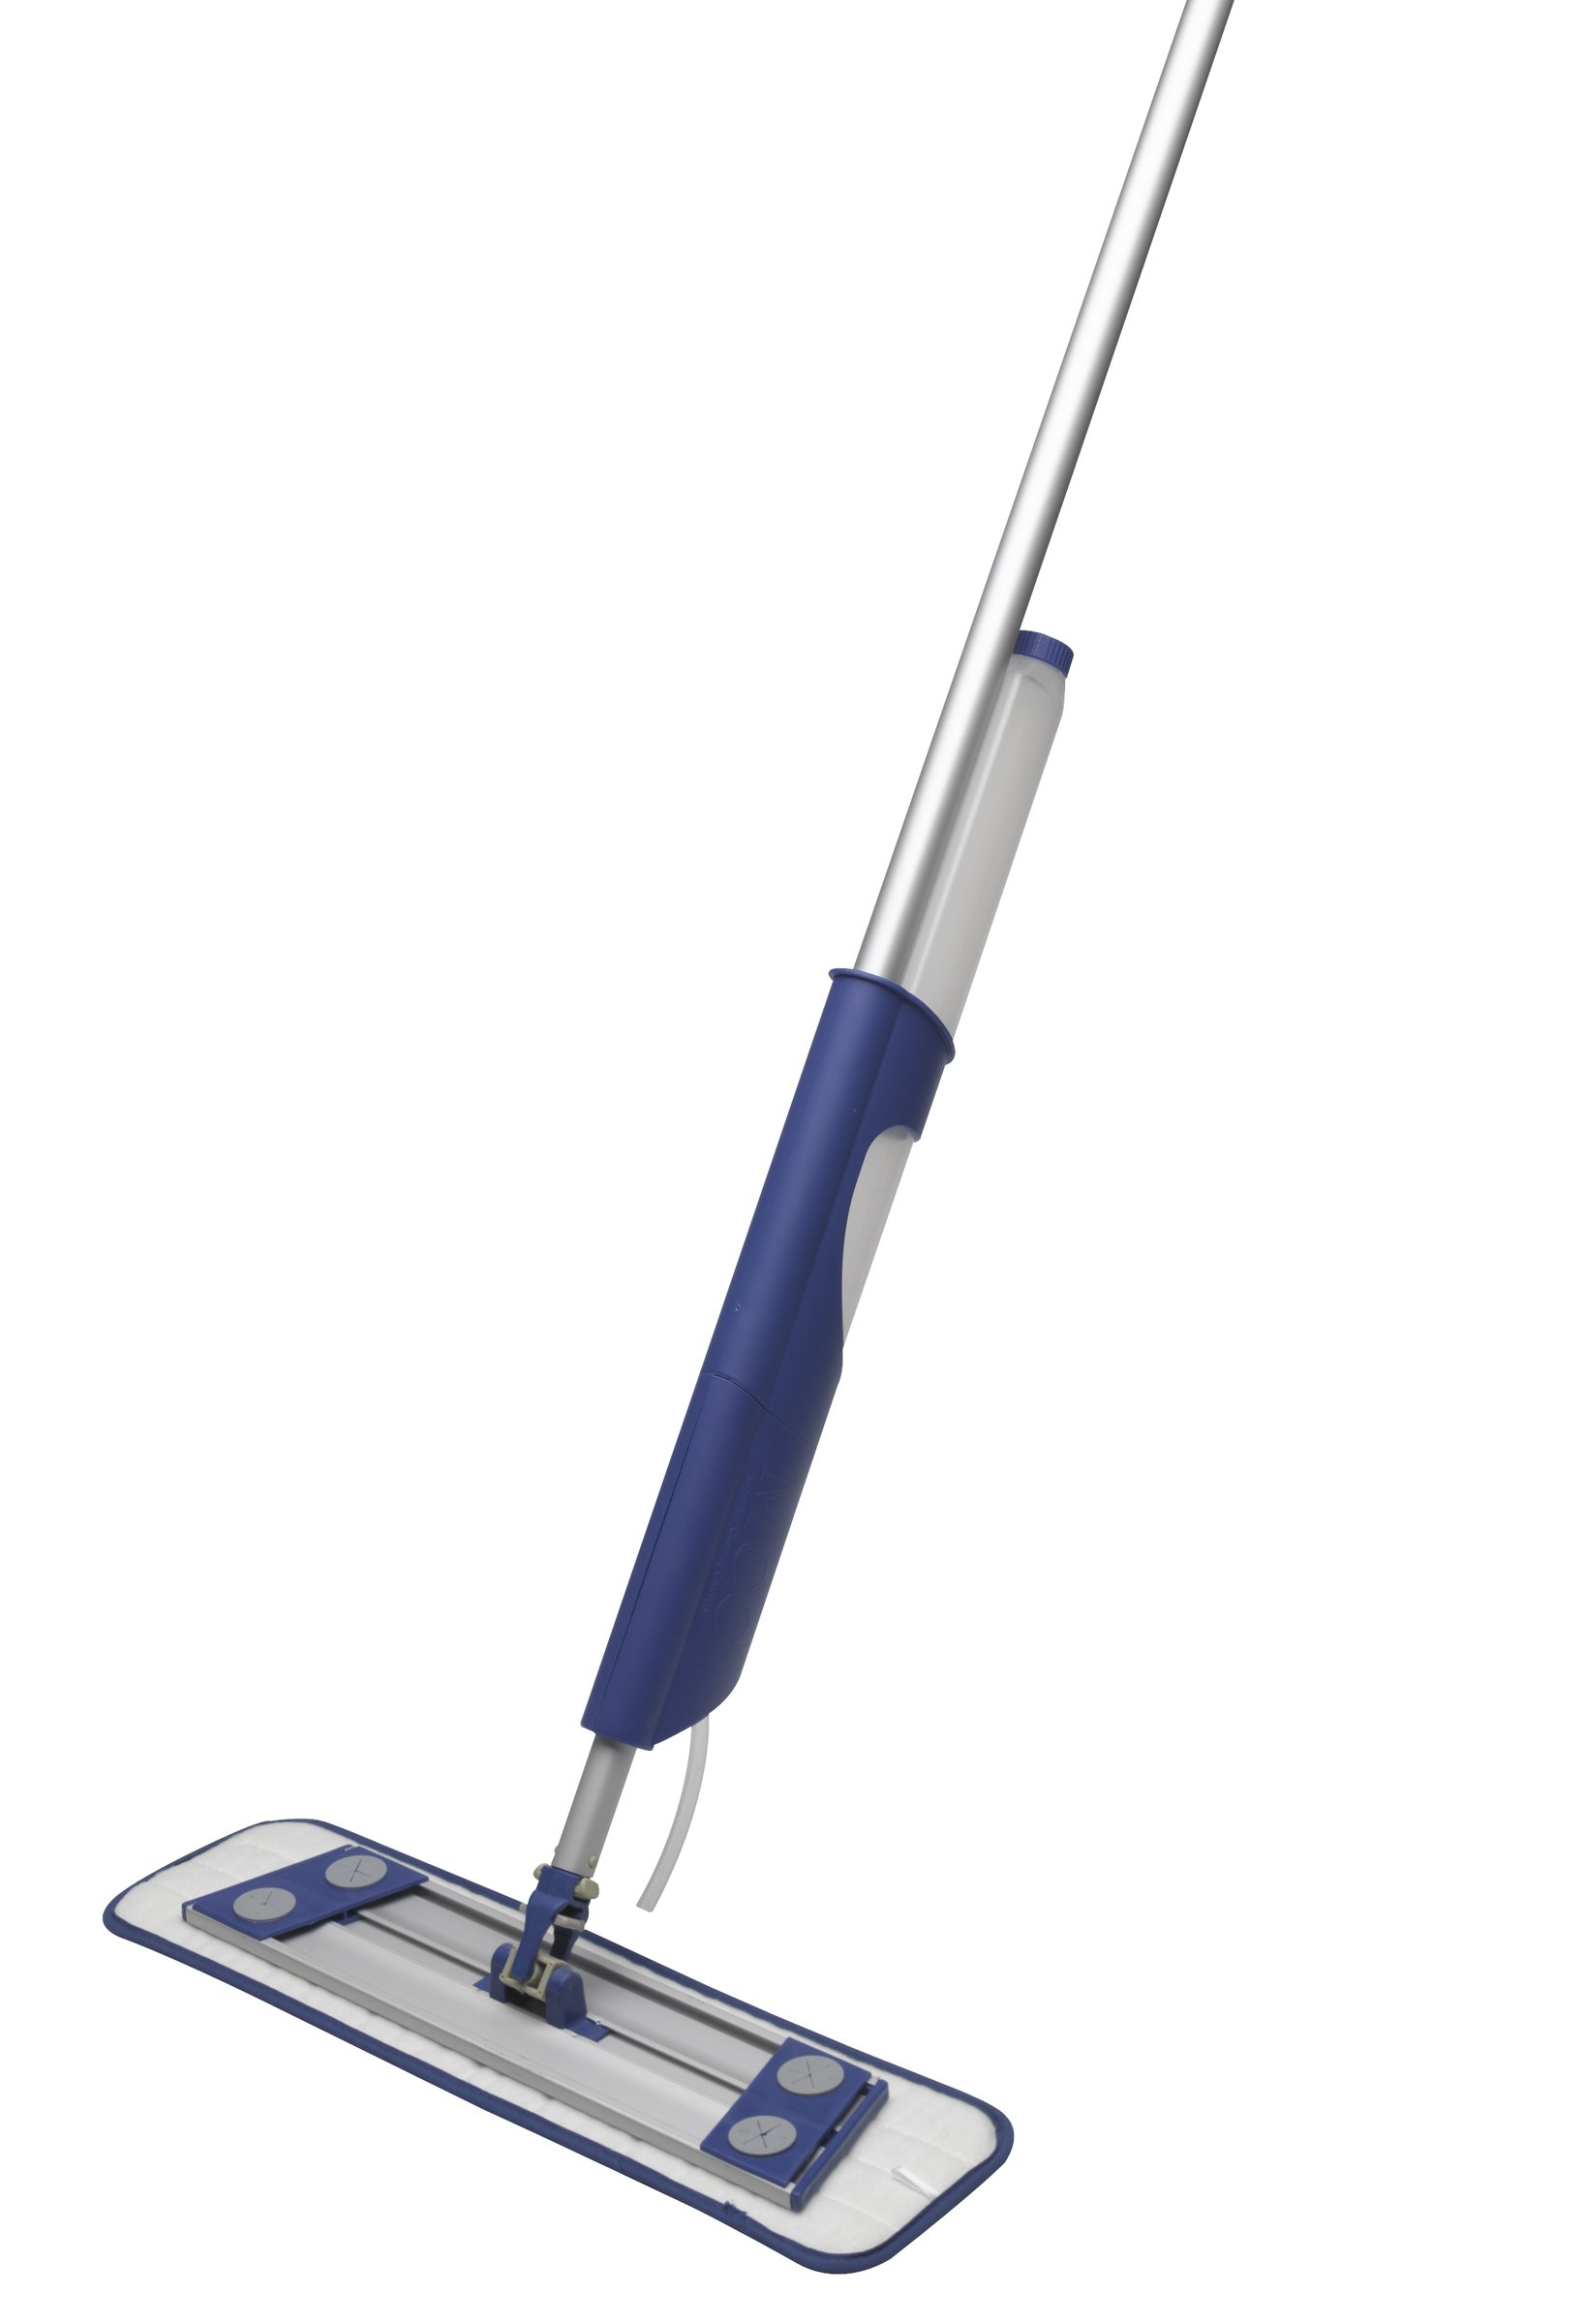 O'Cedar Commercial 96957 MaxiPlus All-in-One Cleaning System